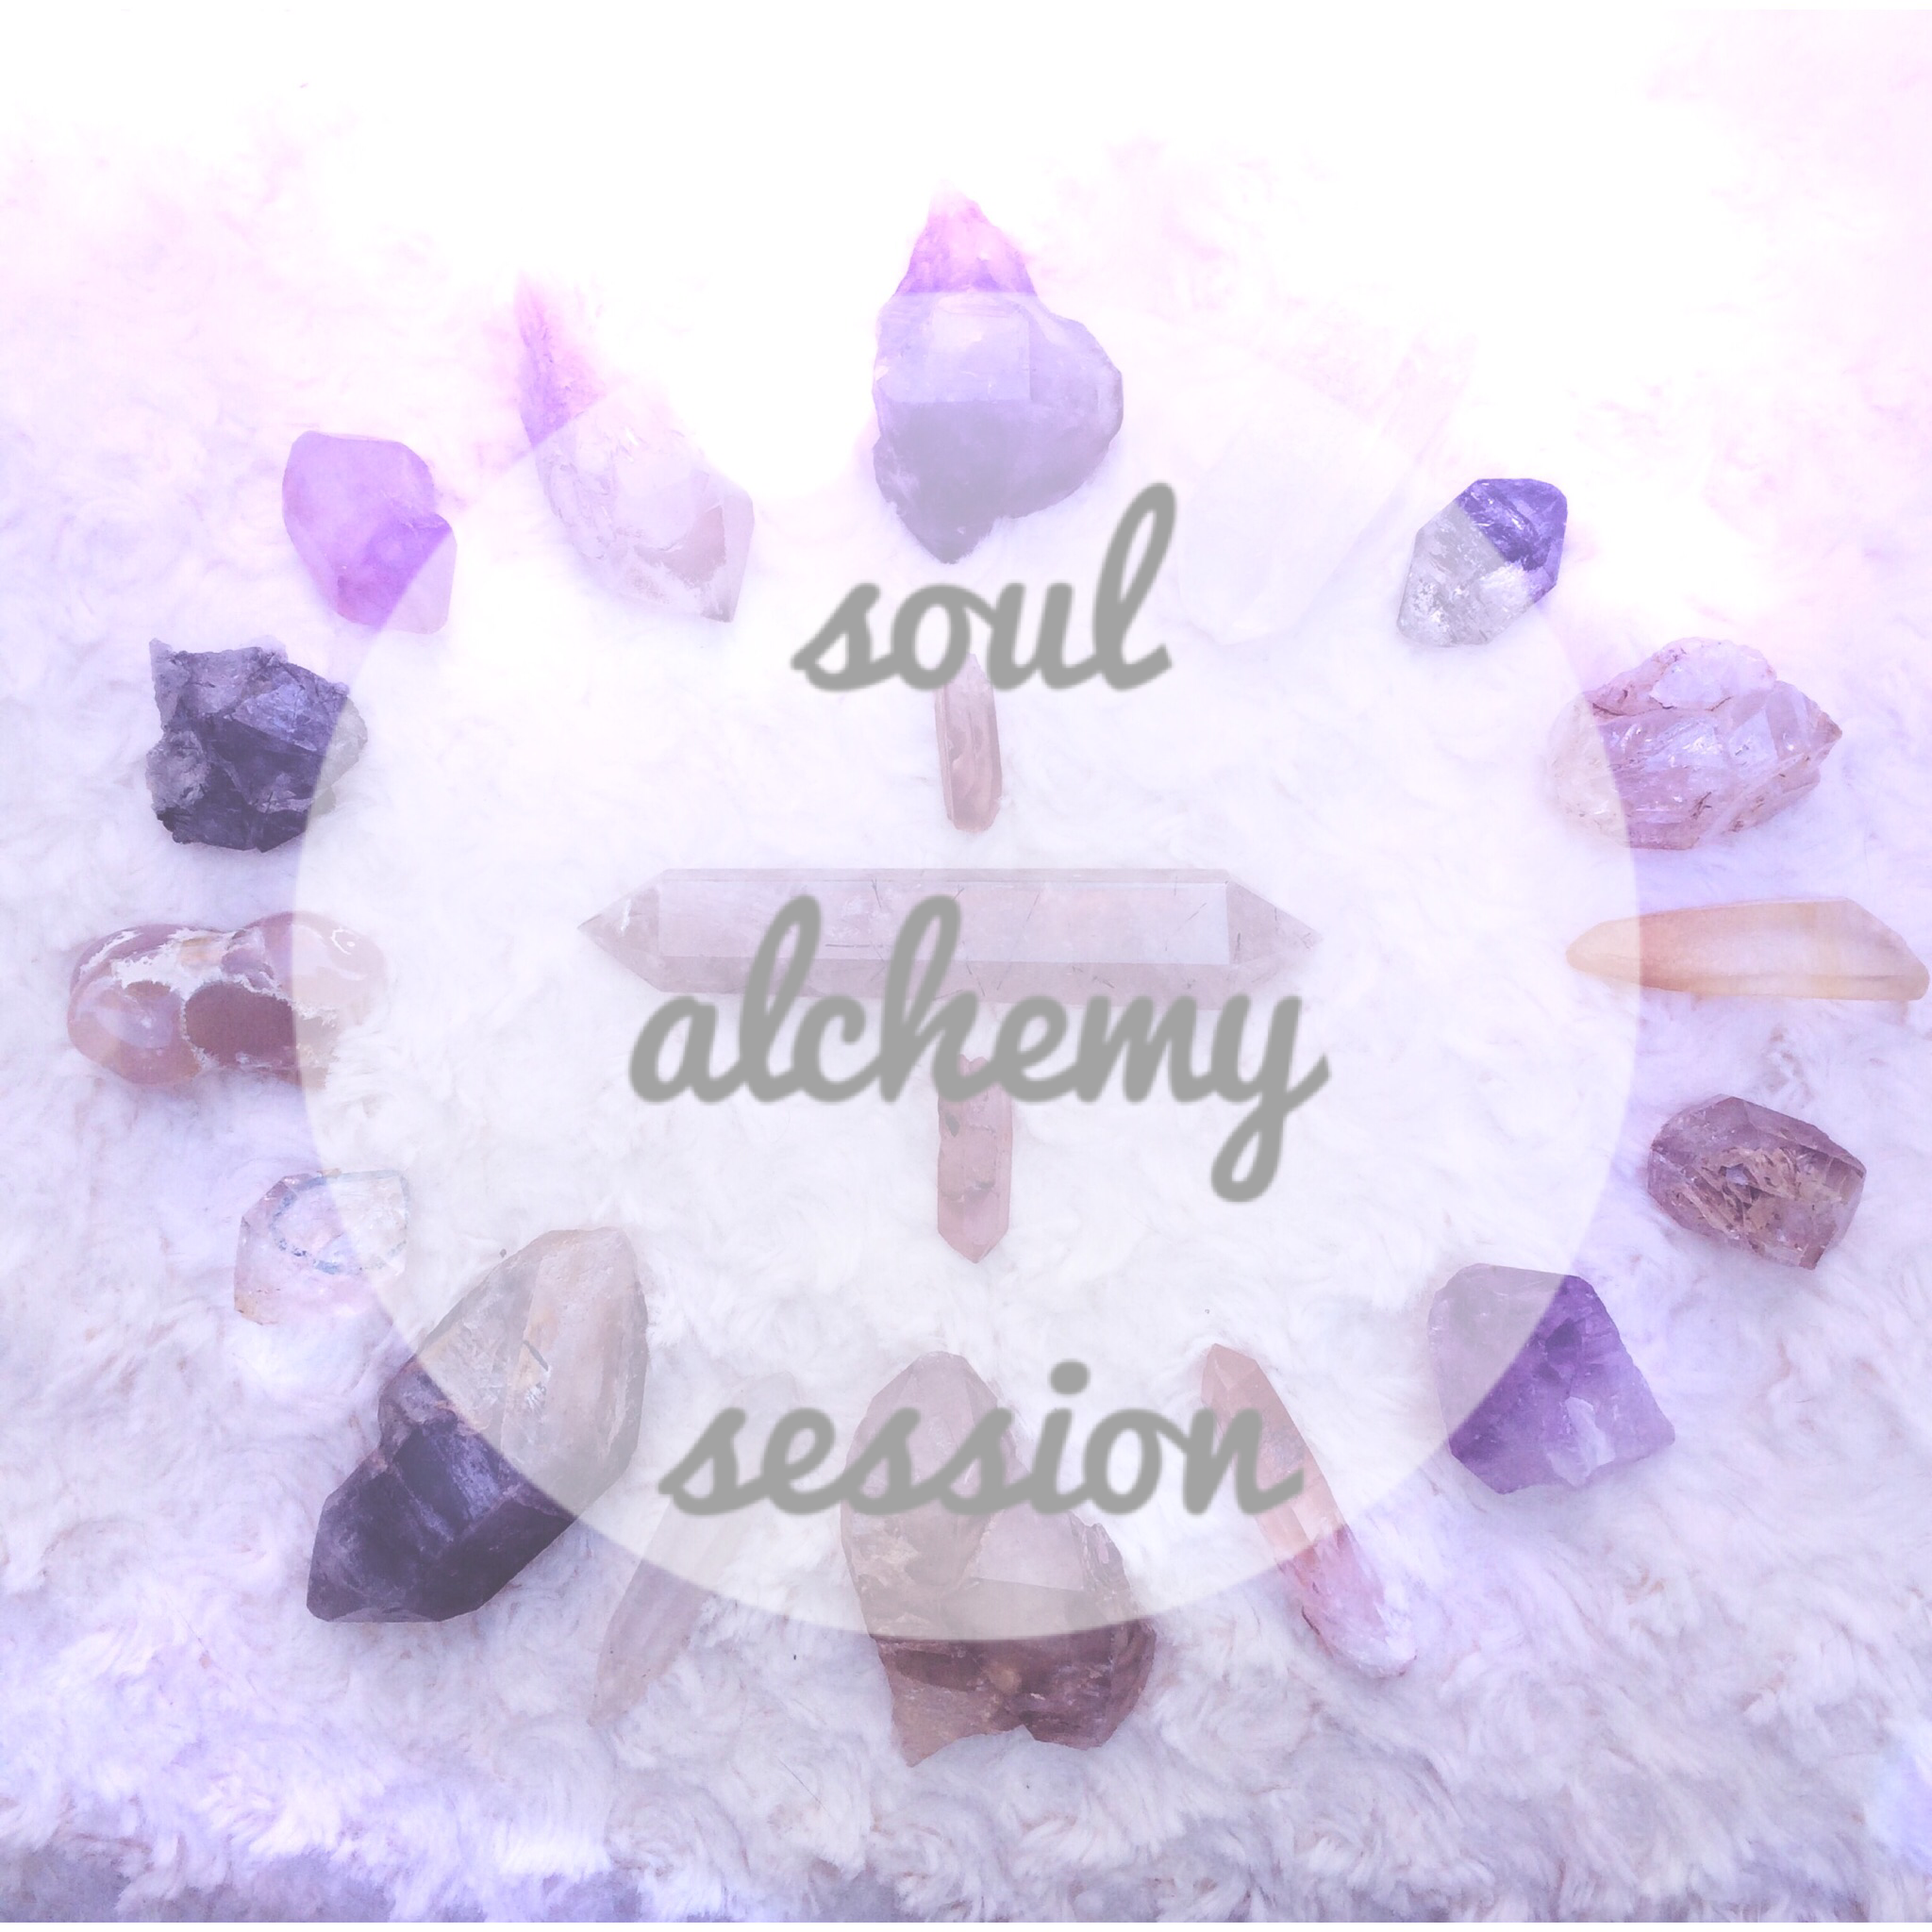 SOUL ALCHEMY SESSION    Do you need a high-impact dose of divine truth and spiritual guidance? These 60-minute intuitive healing sessions reveal what's energetically blocking you and how you can learn from it and move past it, so you can move back into alignment.